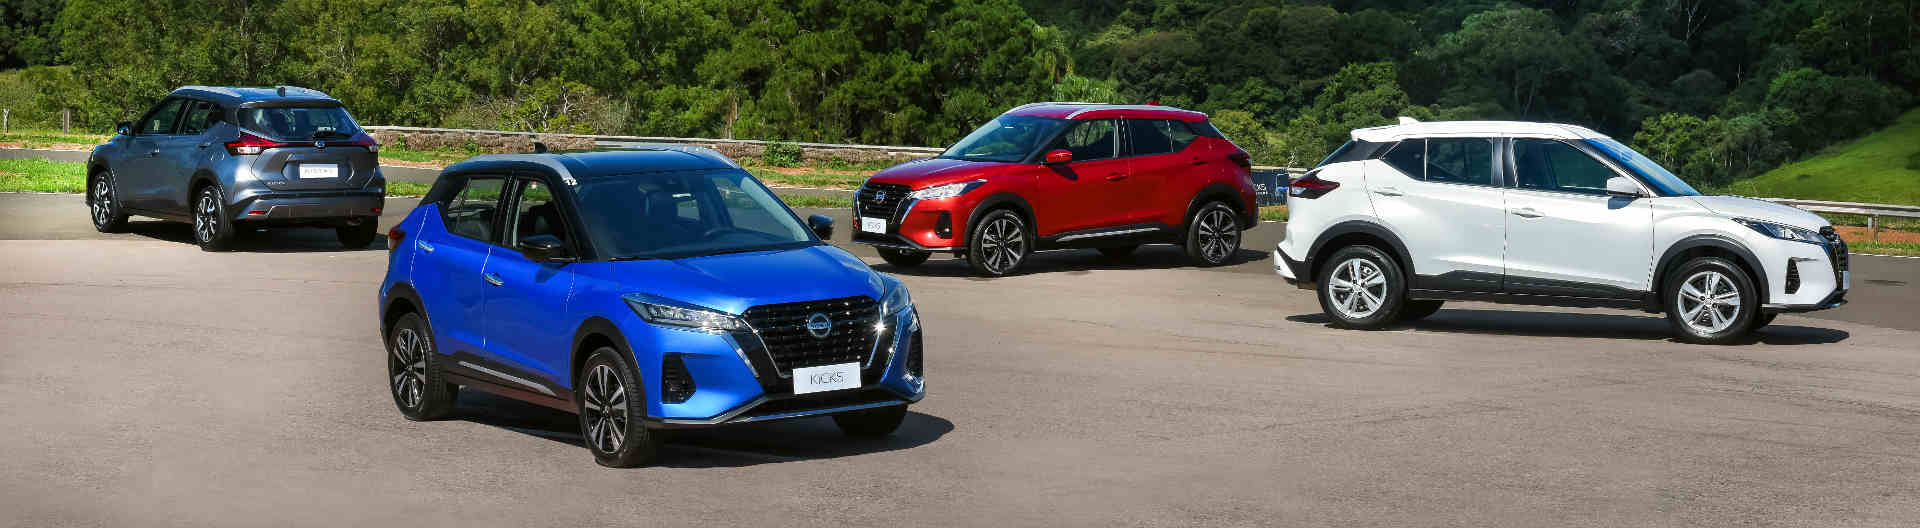 Foto de capa do novo Nissan Kicks 2022